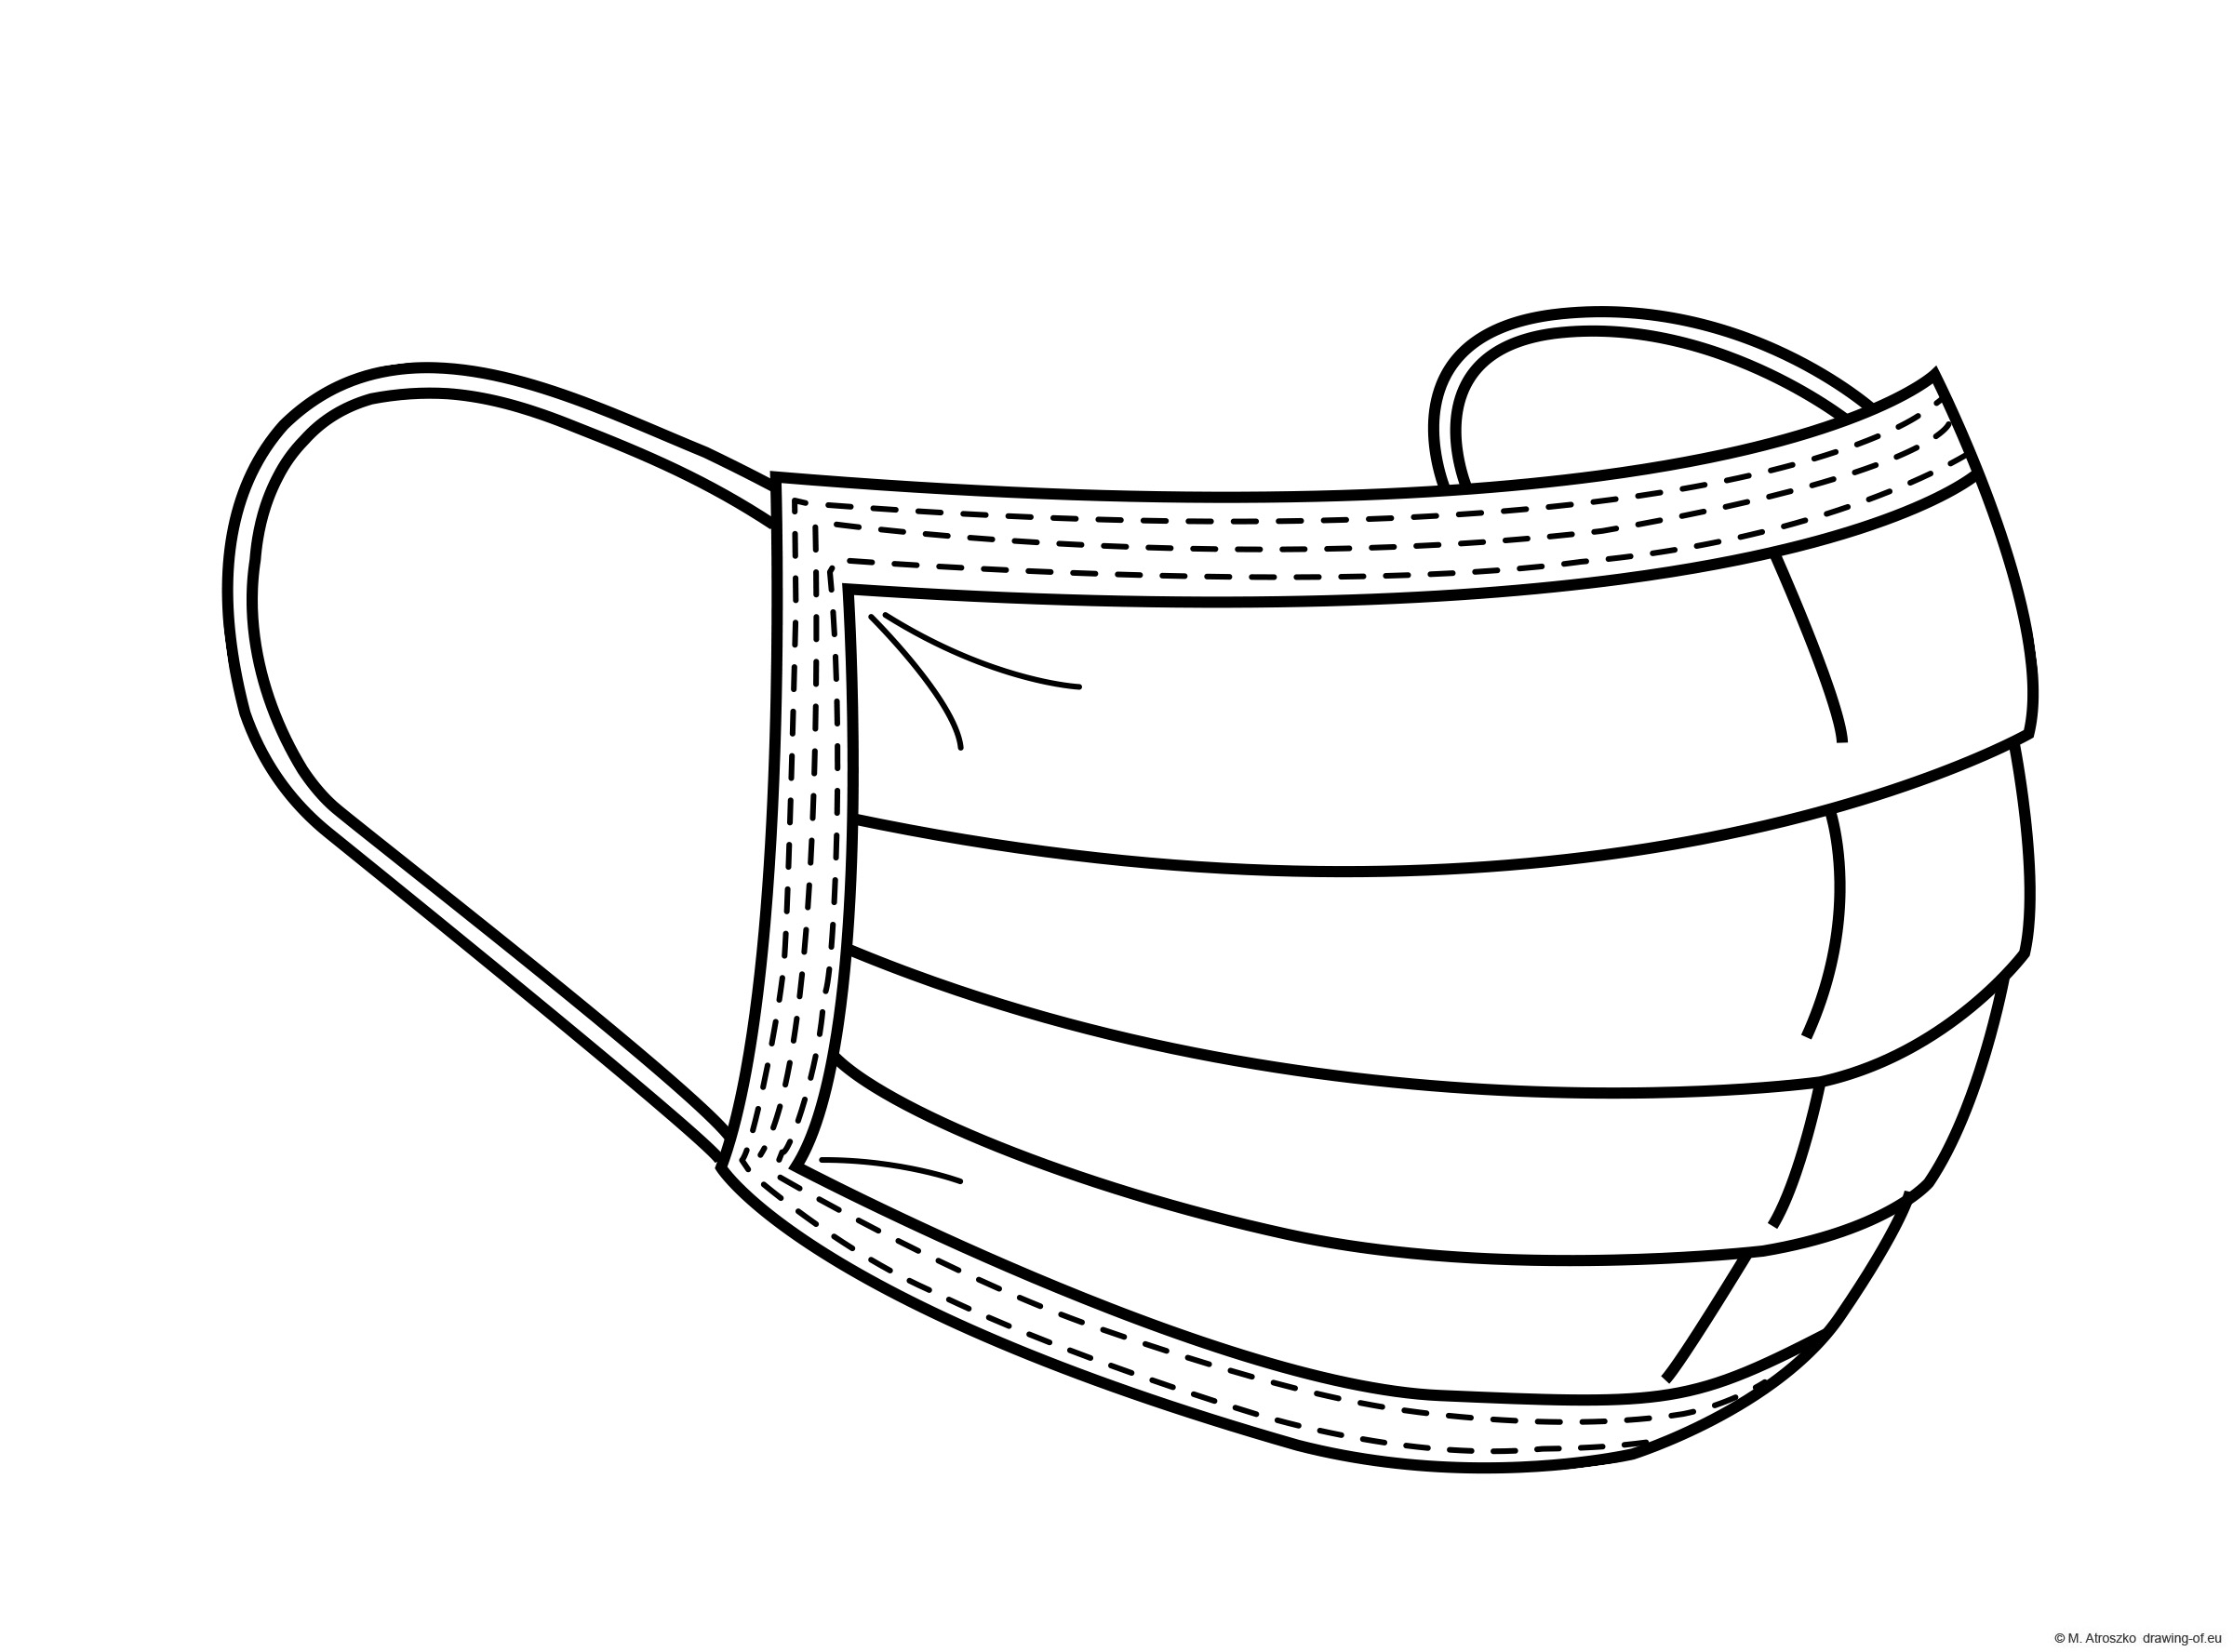 Covid mask illustration - coloring page